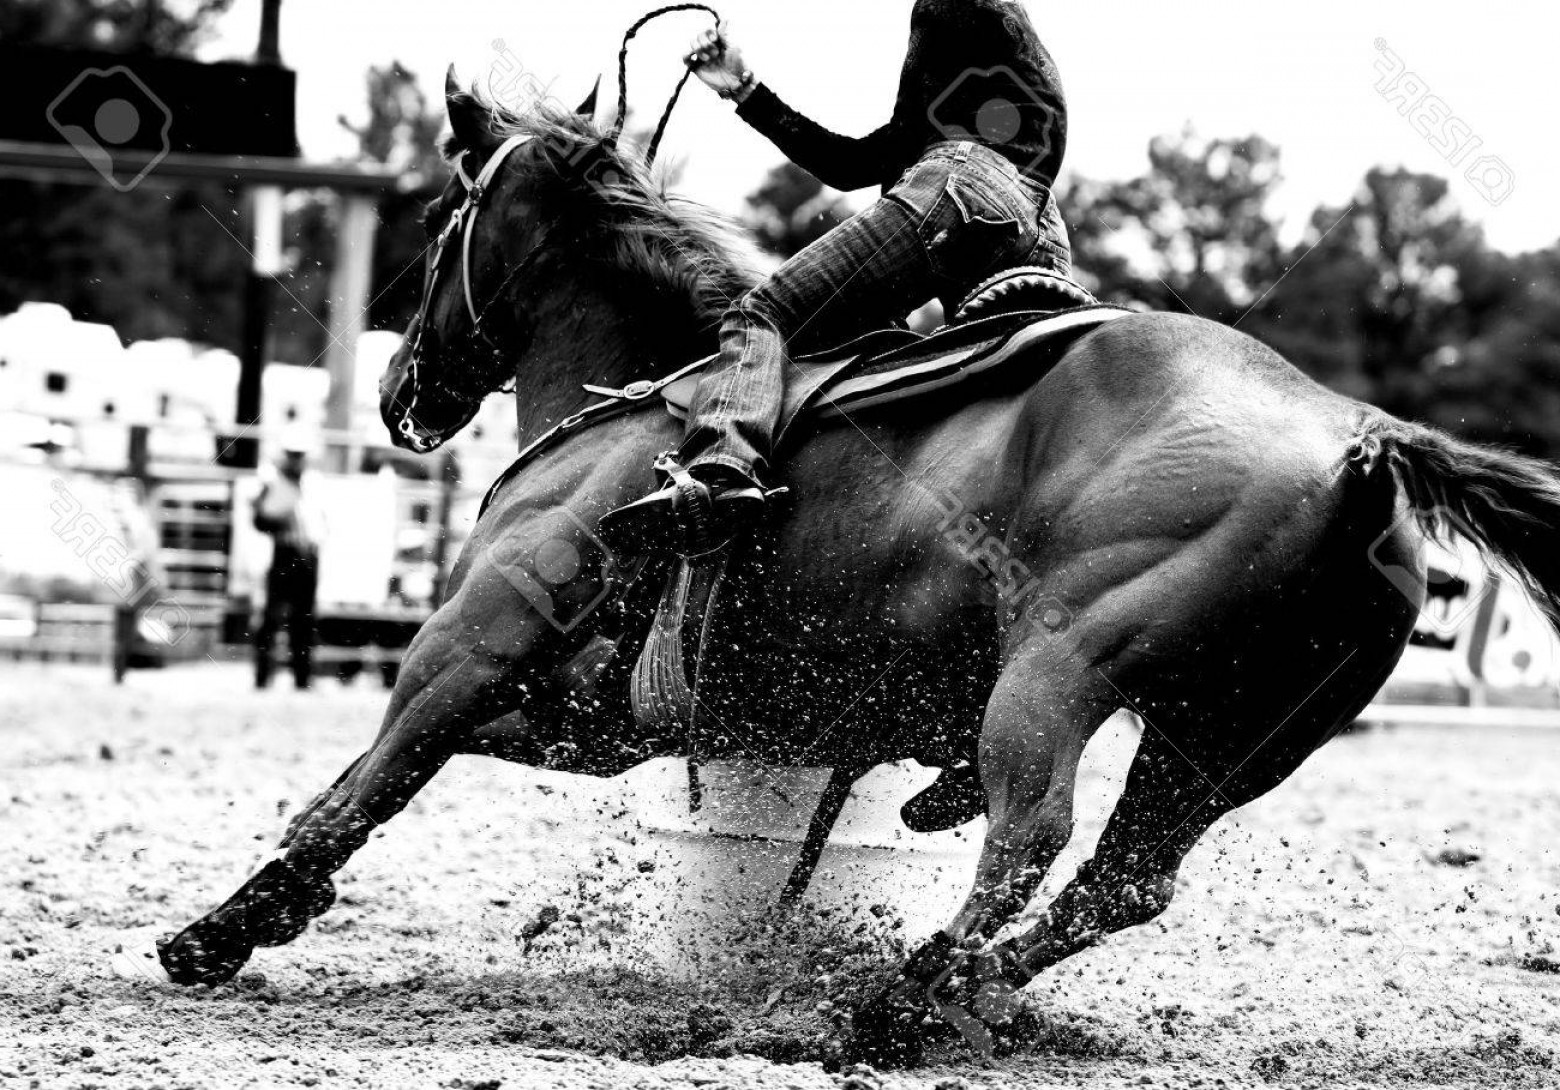 Barrel Racer Vector: Photohigh Contrast Black And White Closeup Of A Rodeo Barrel Racer Making A Turn At One Of The Barrels Sh